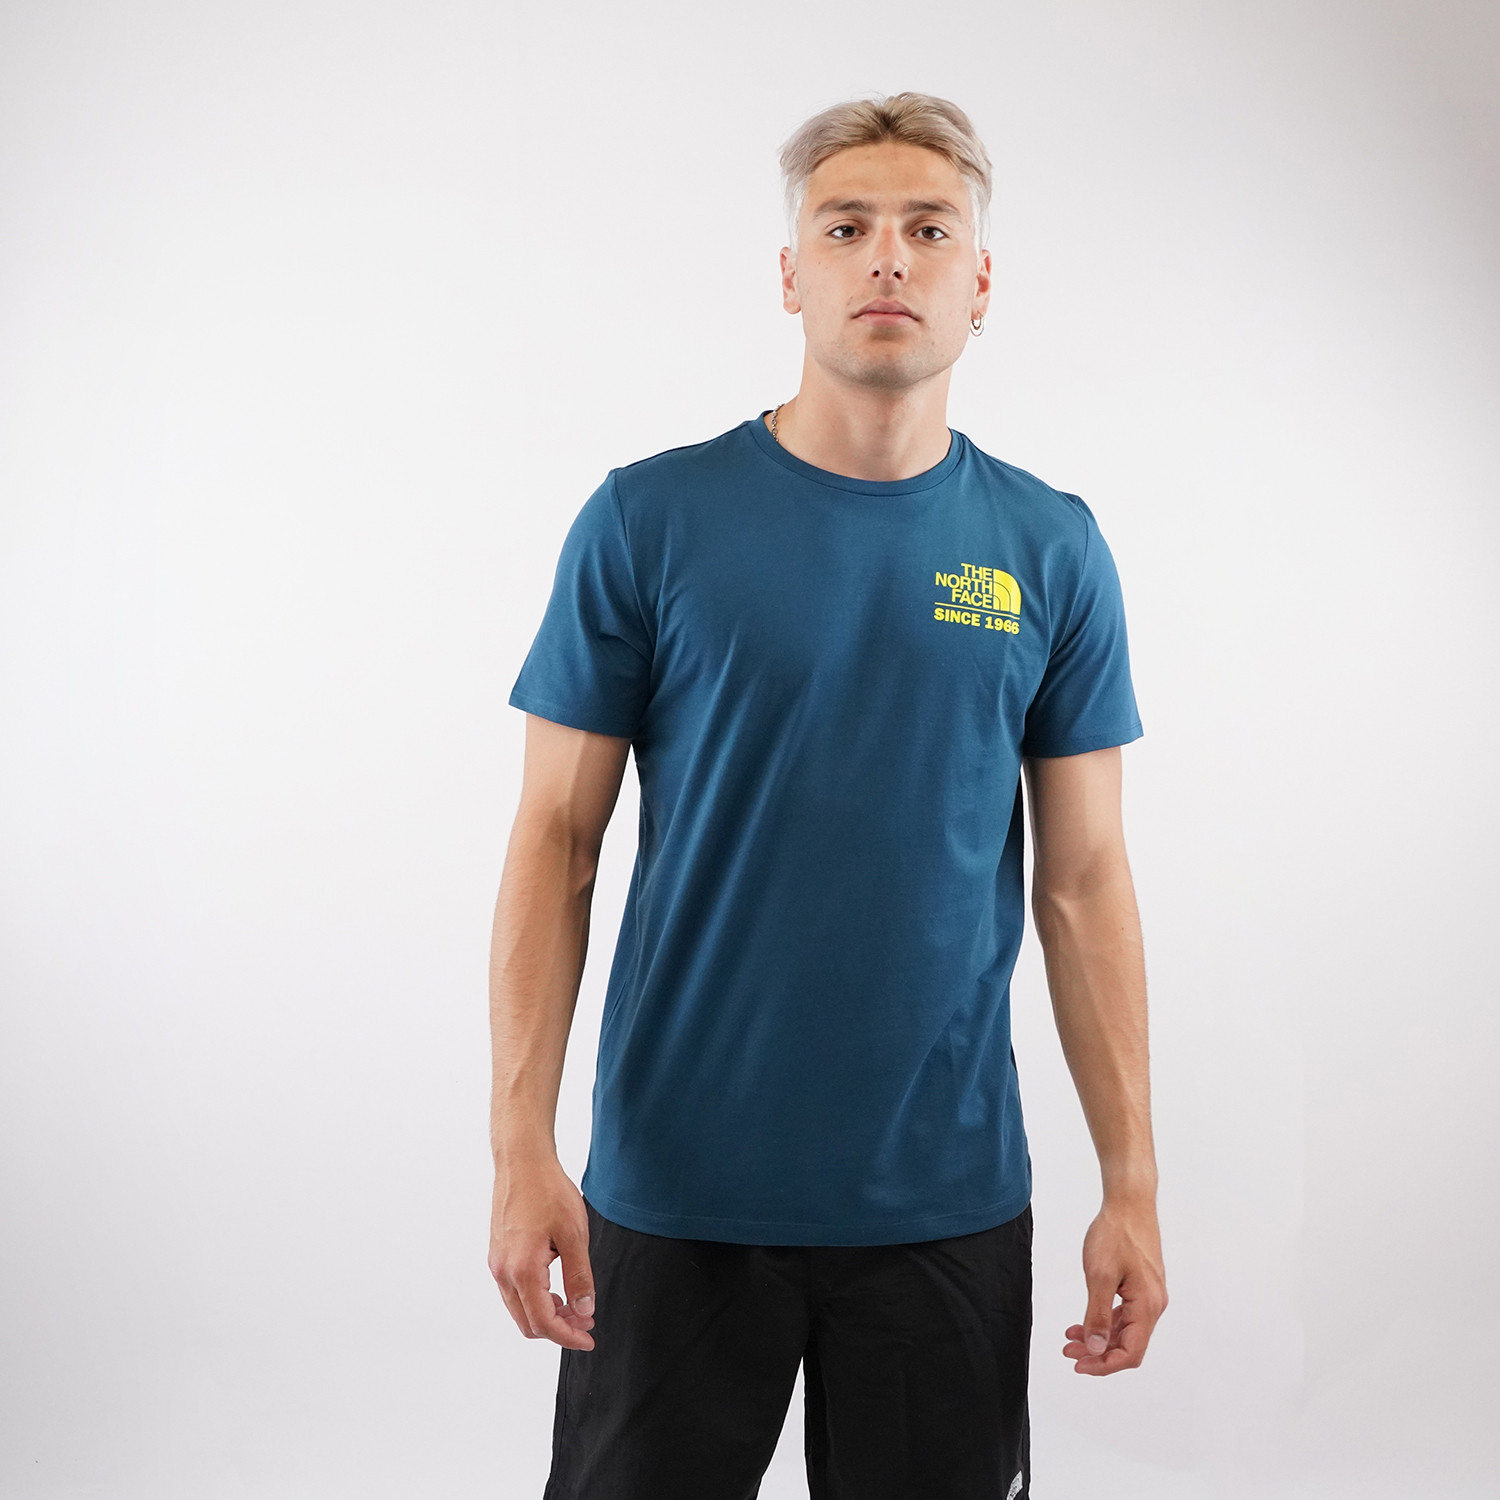 THE NORTH FACE Foundation Ανδρικό T-Shirt (9000073478_51528)